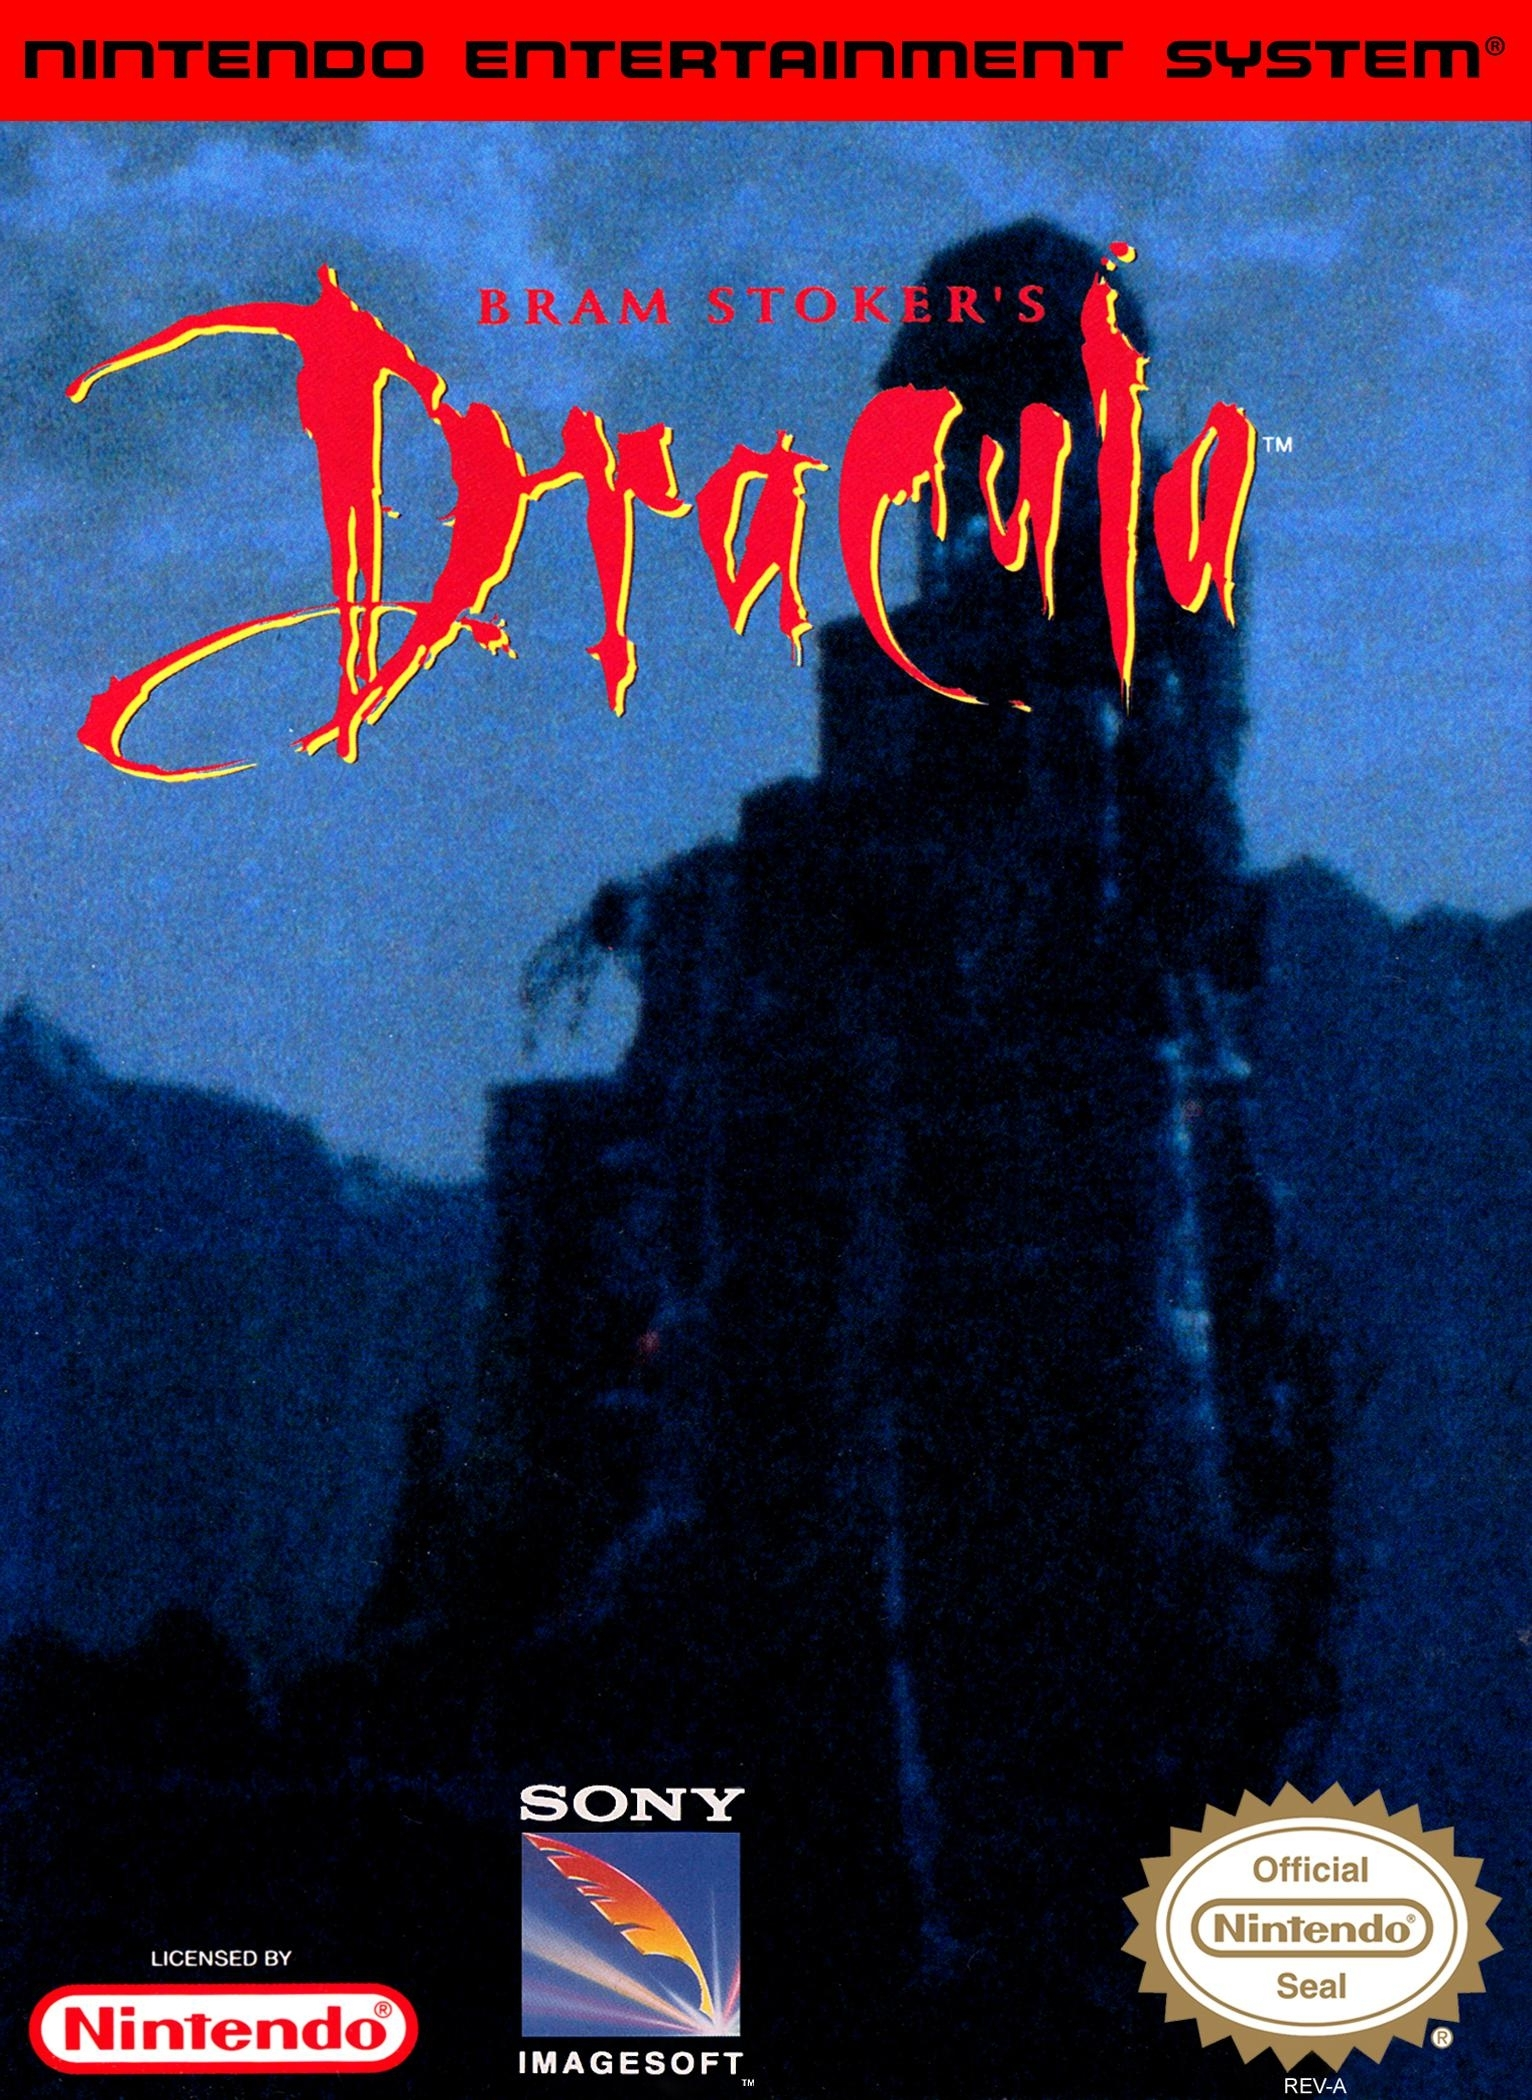 Bram Stoker's Dracula facts and statistics